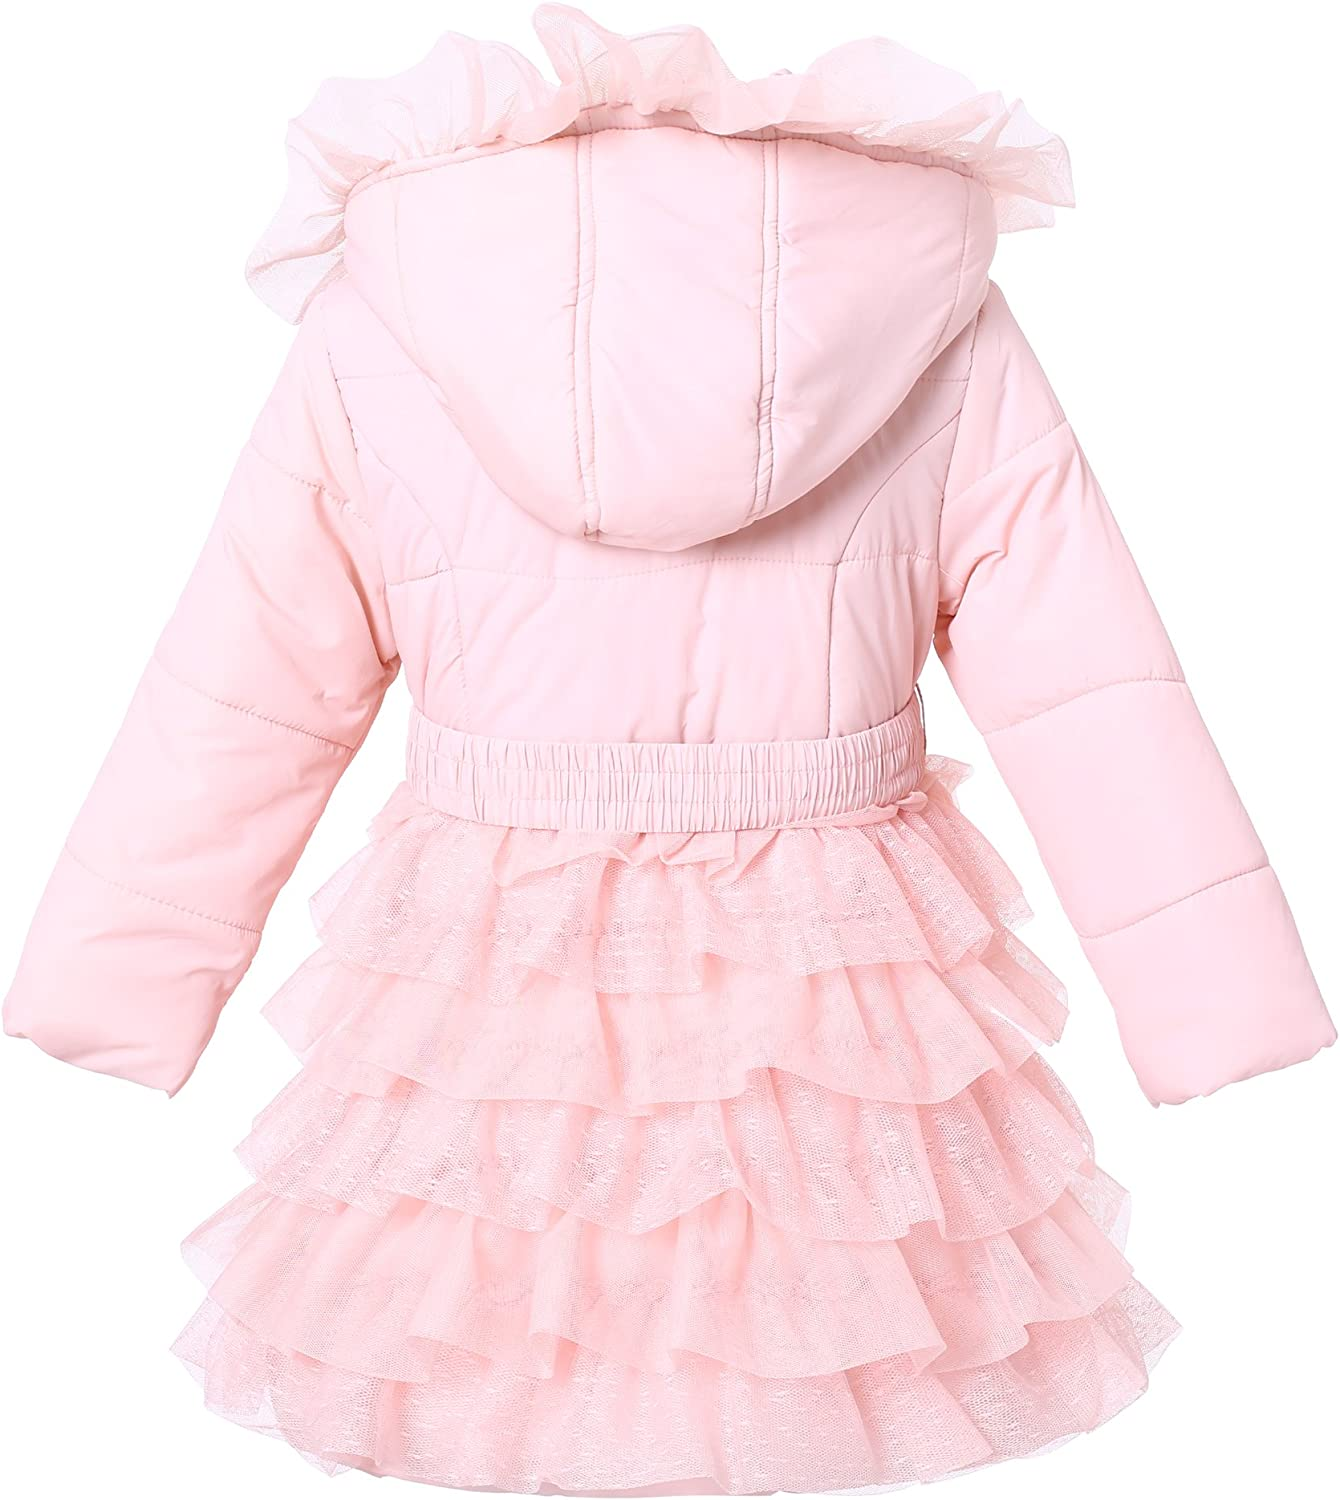 Richie House Girls Padding Jacket with Ruffled Mesh RH1395 Size 3-14Y